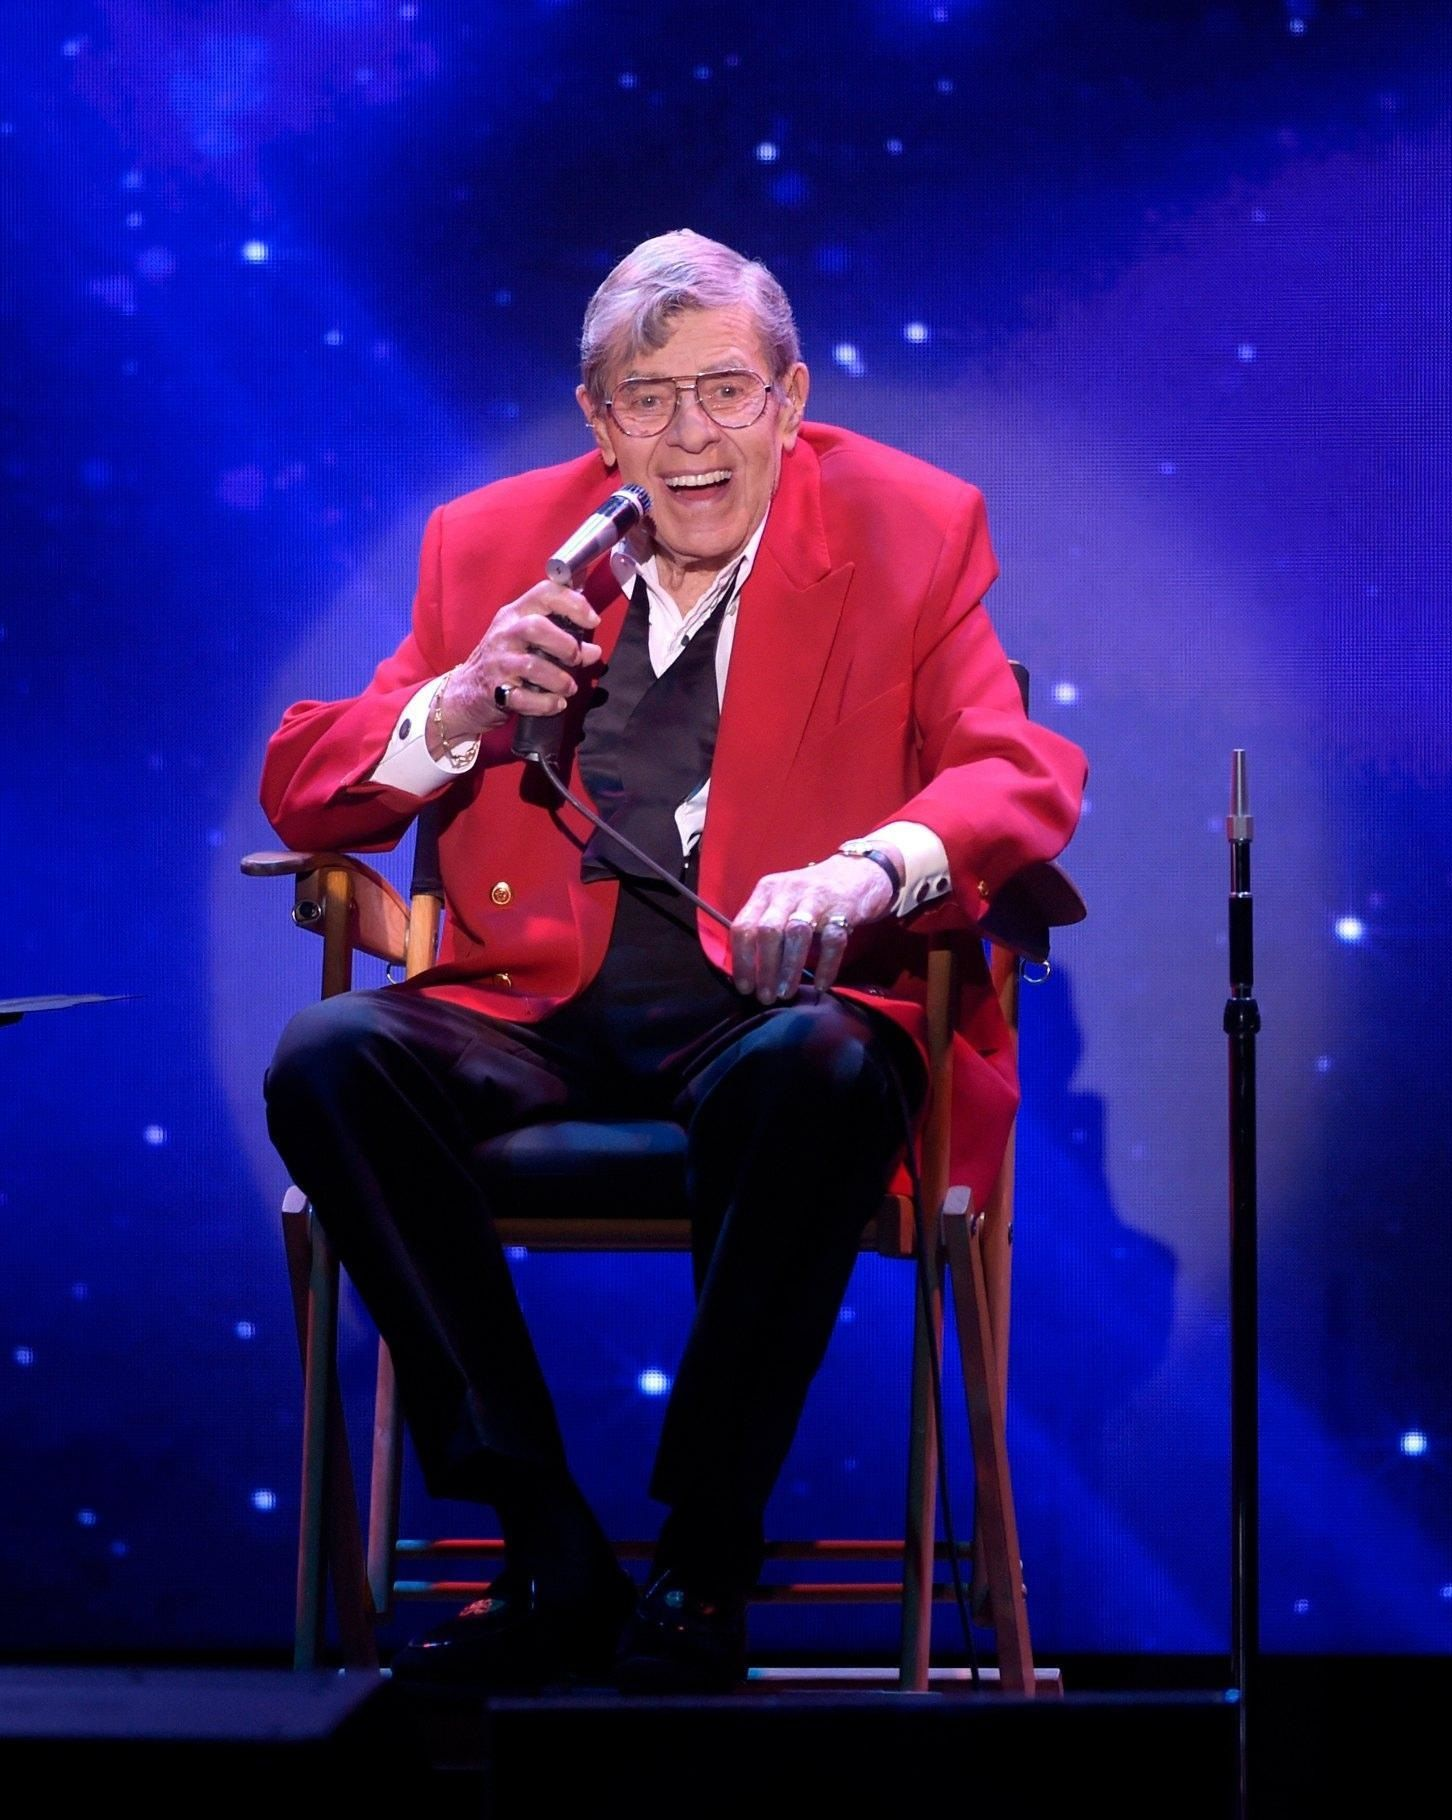 Comedian and actor Jerry Lewis dies at 91